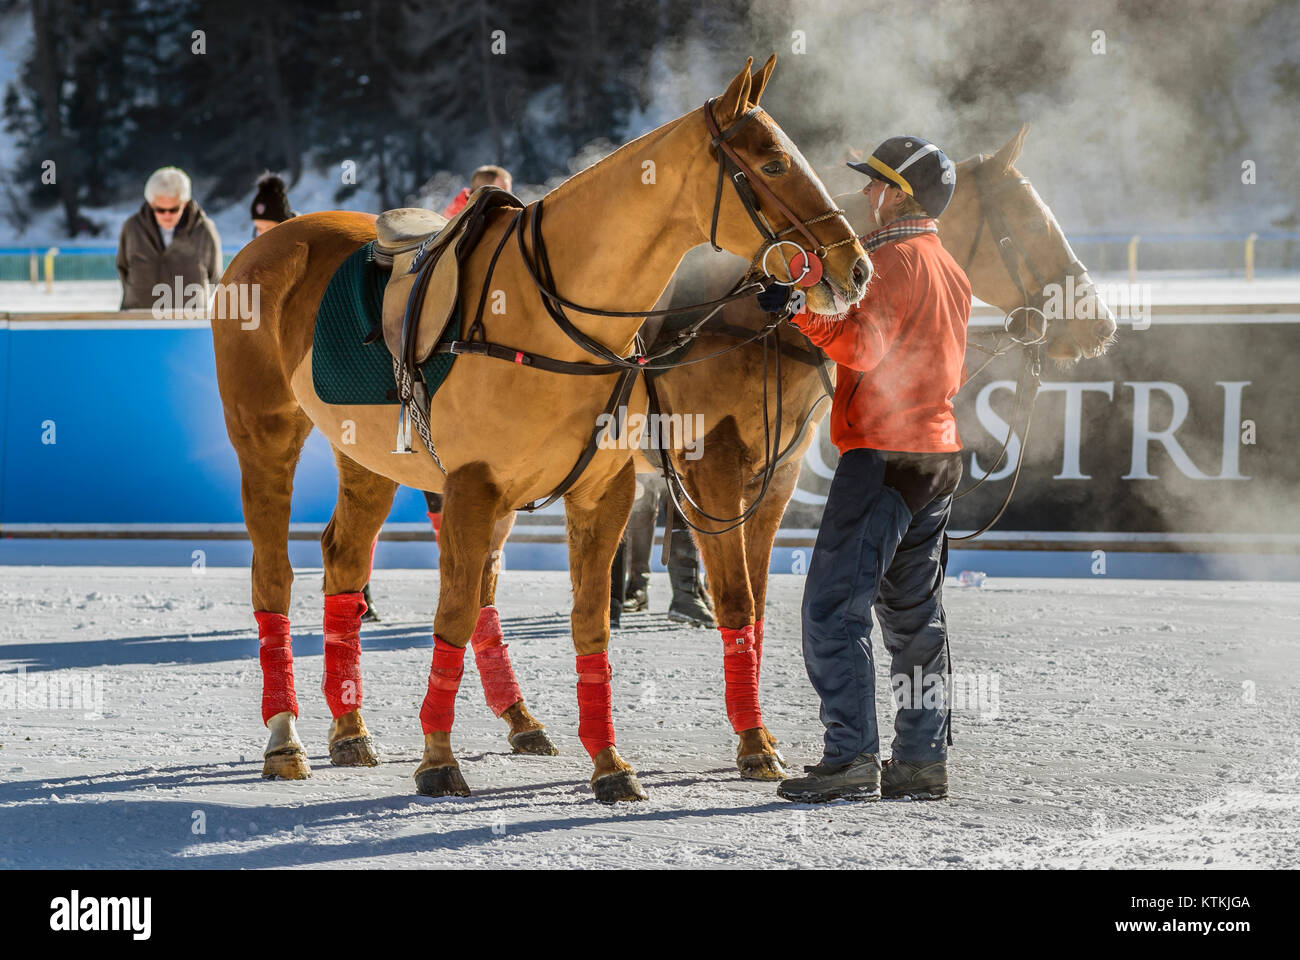 Polo Horses during the Snow Polo Game France-Germany during the Polo World Cup in St Moritz, Switzerland.  Polo - Stock Image